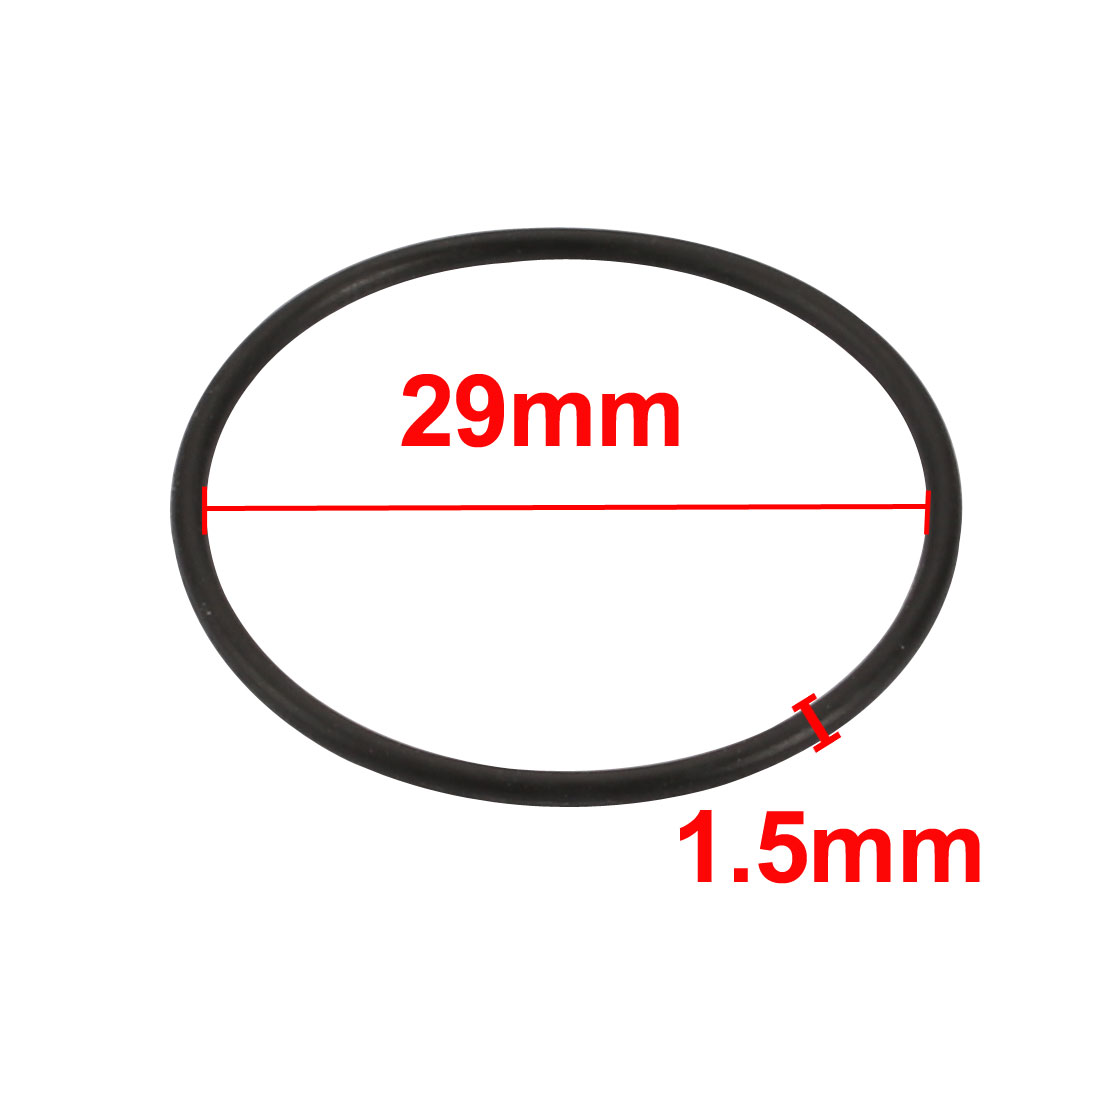 25pcs 33mm x 1.5mm Size Mechanical Rubber O Ring Oil Seal Gaskets Black - image 1 de 2